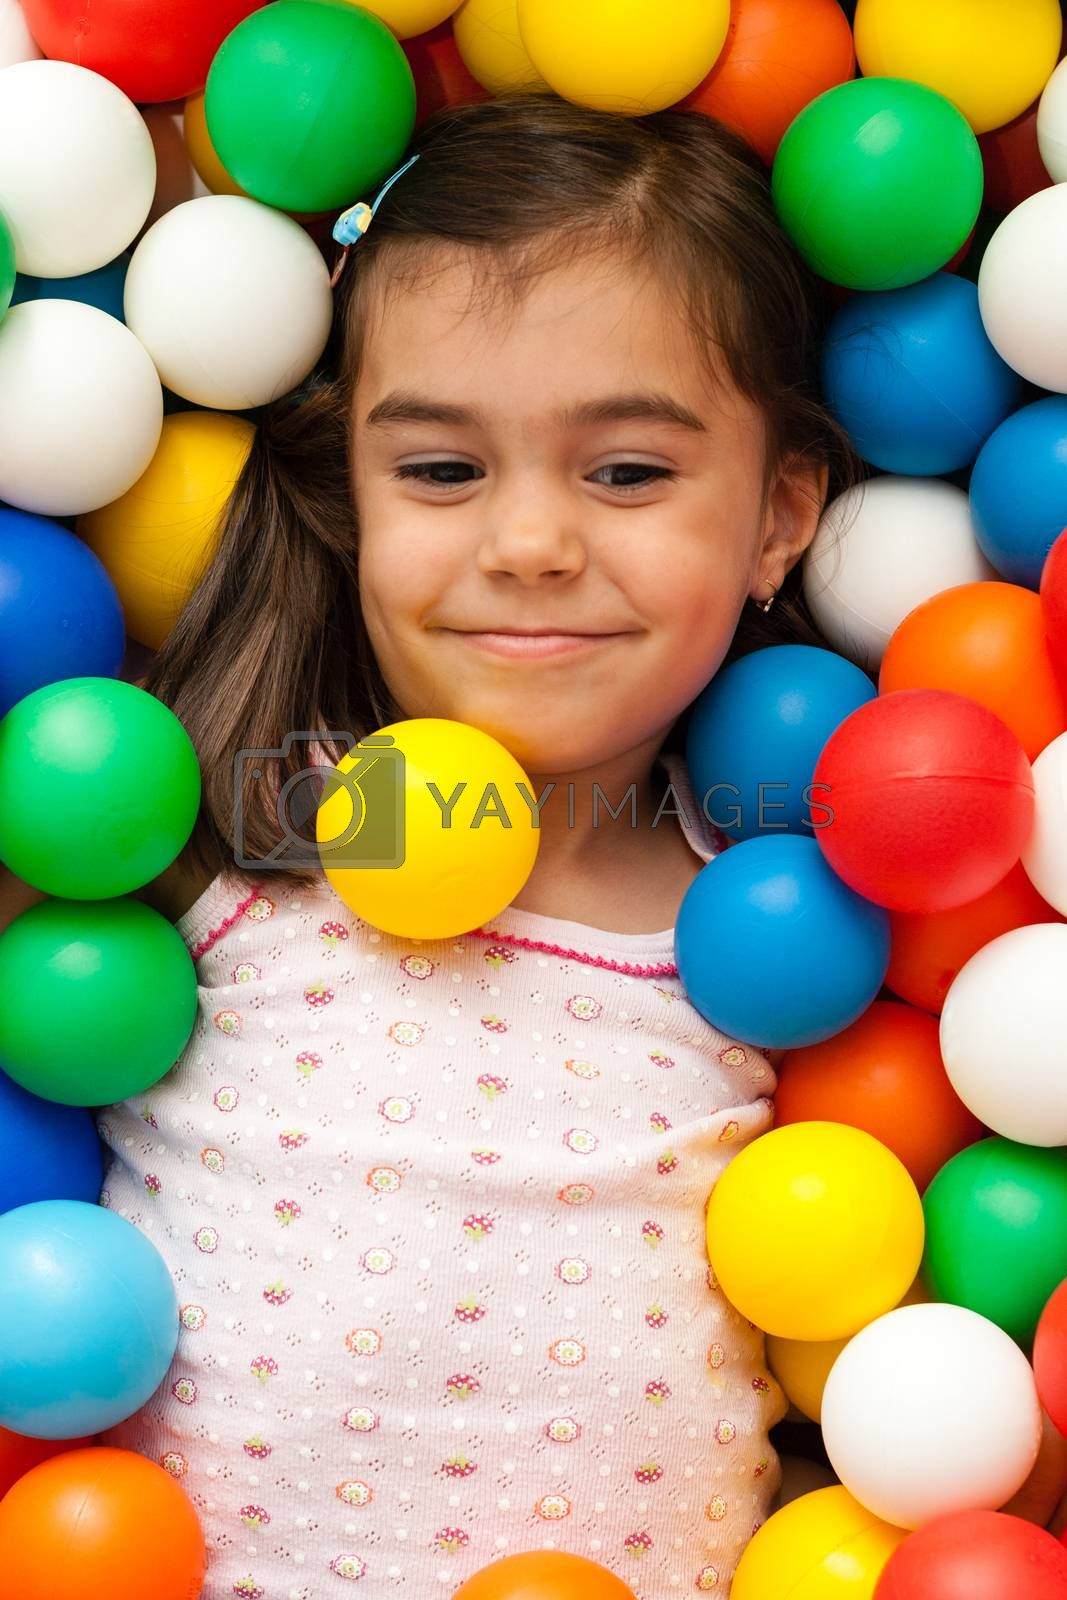 young girl playing with color toy balls